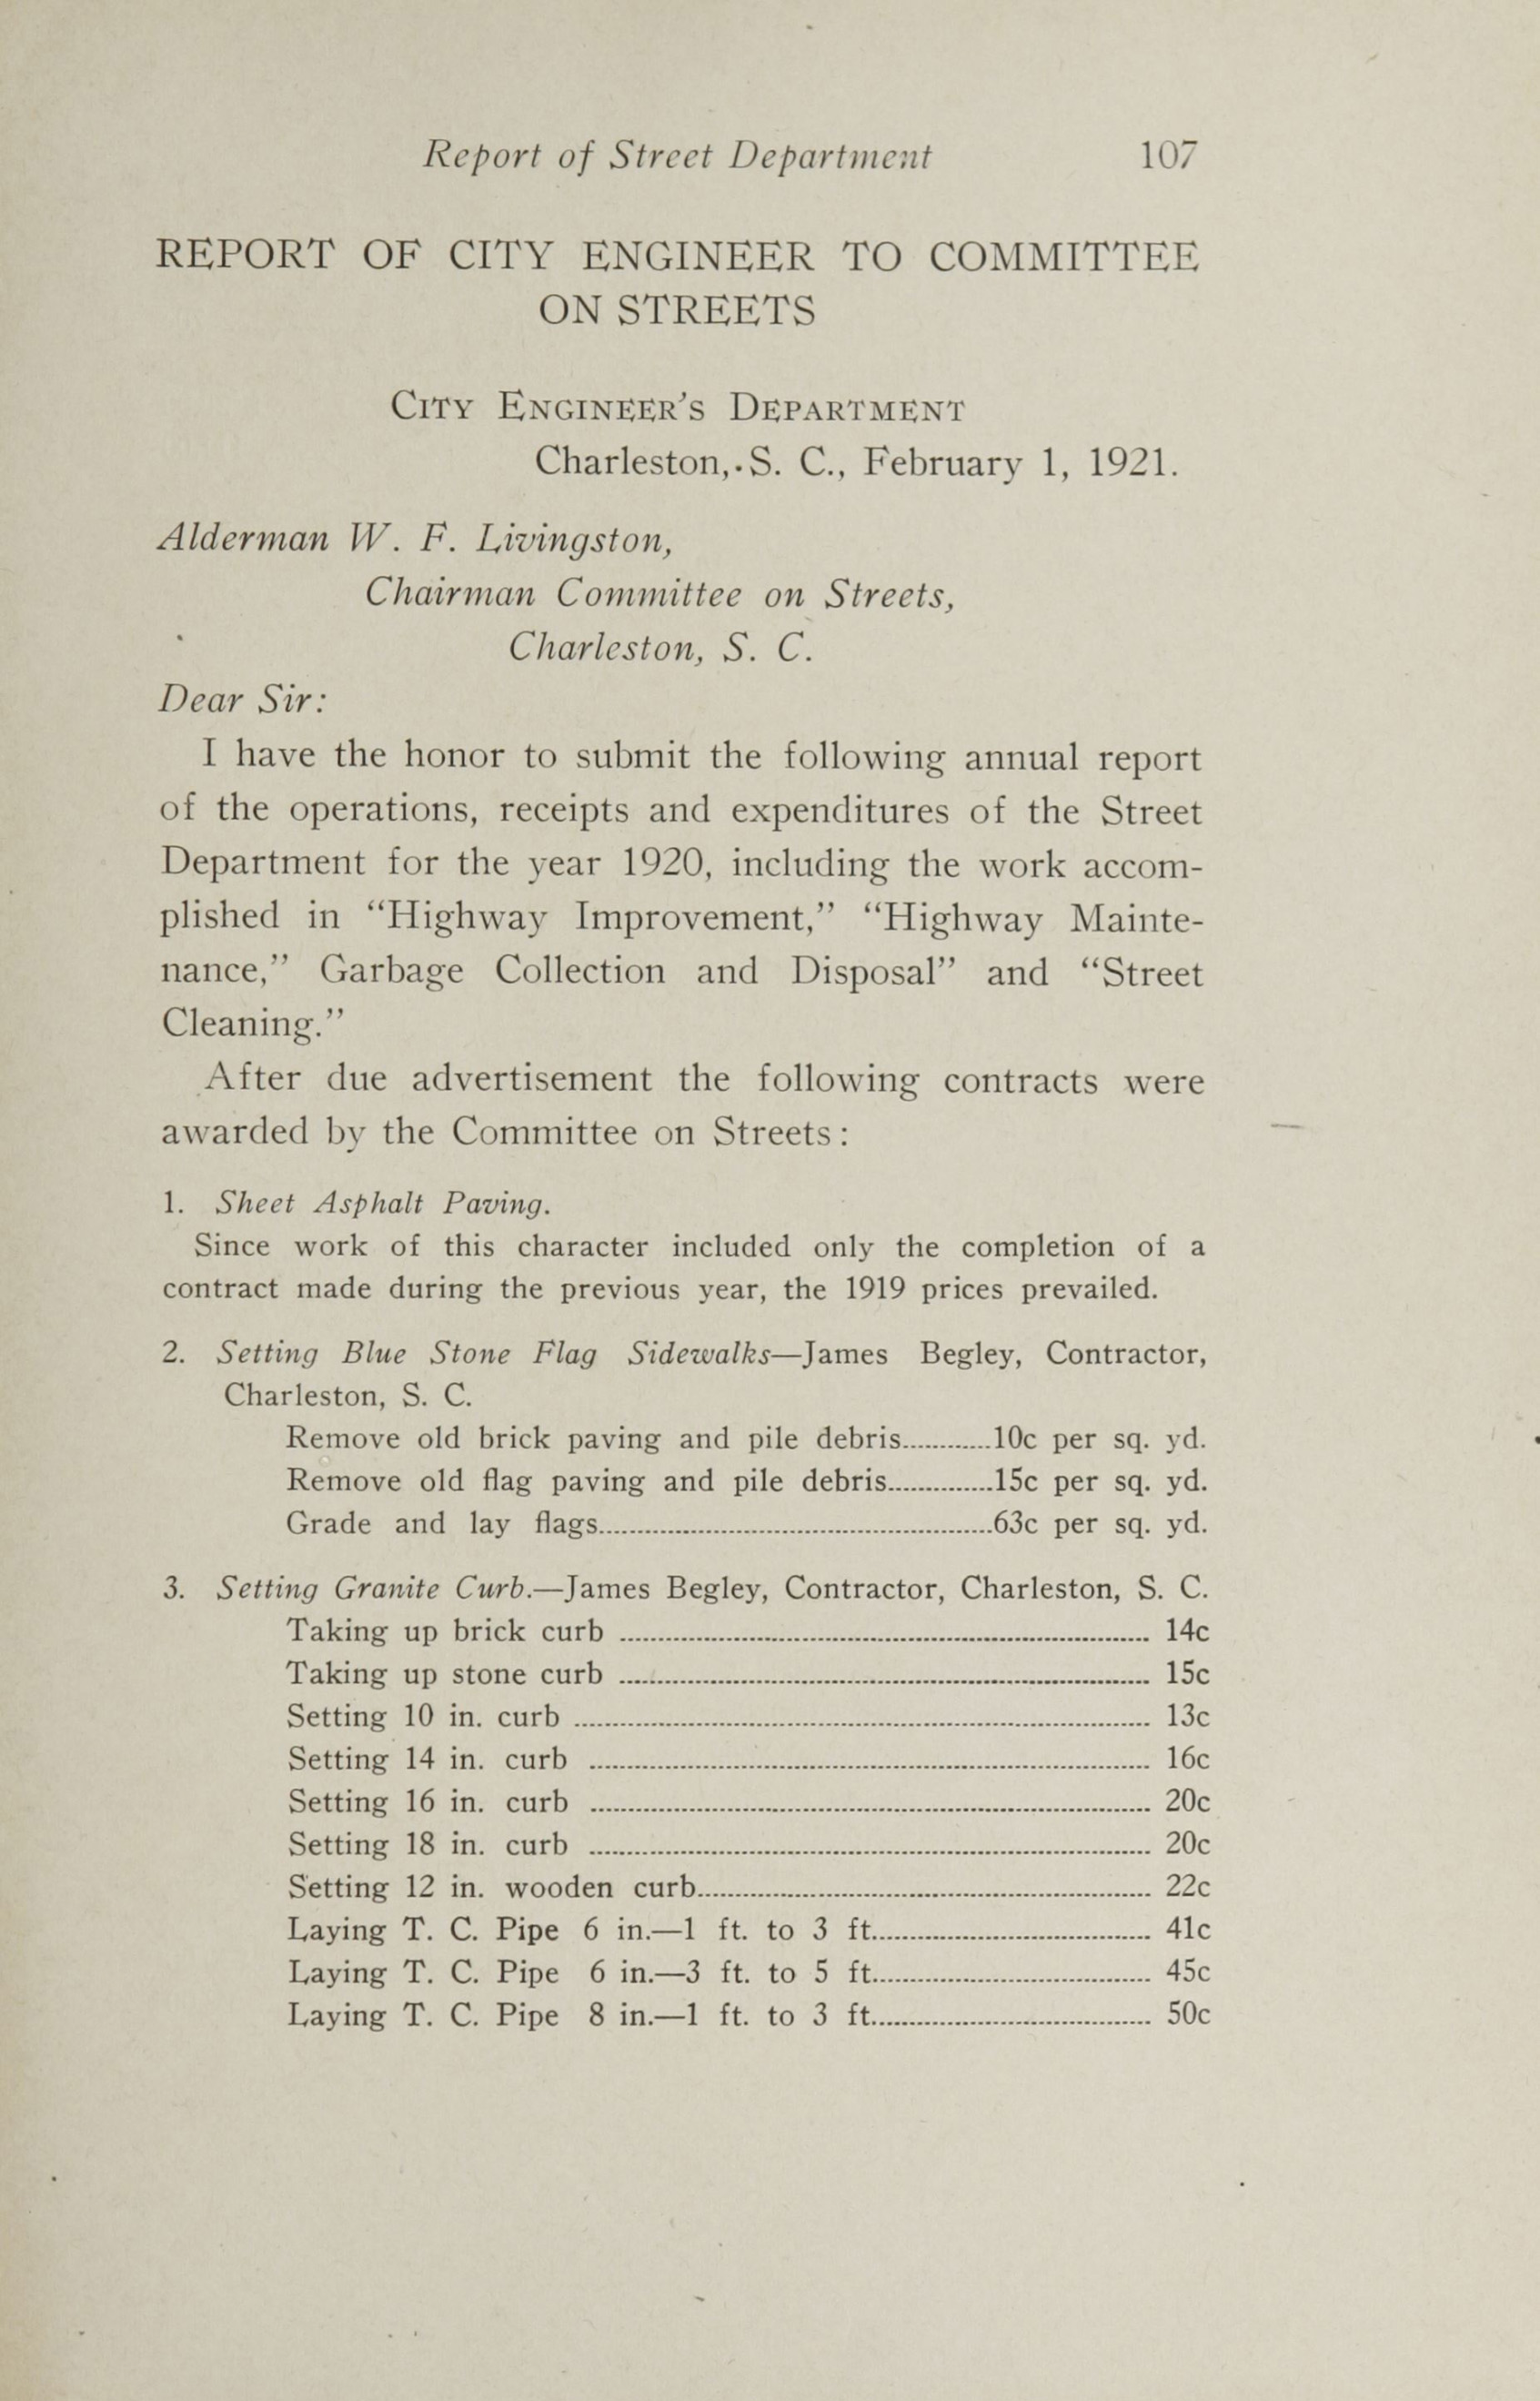 Charleston Yearbook, 1920, page 107